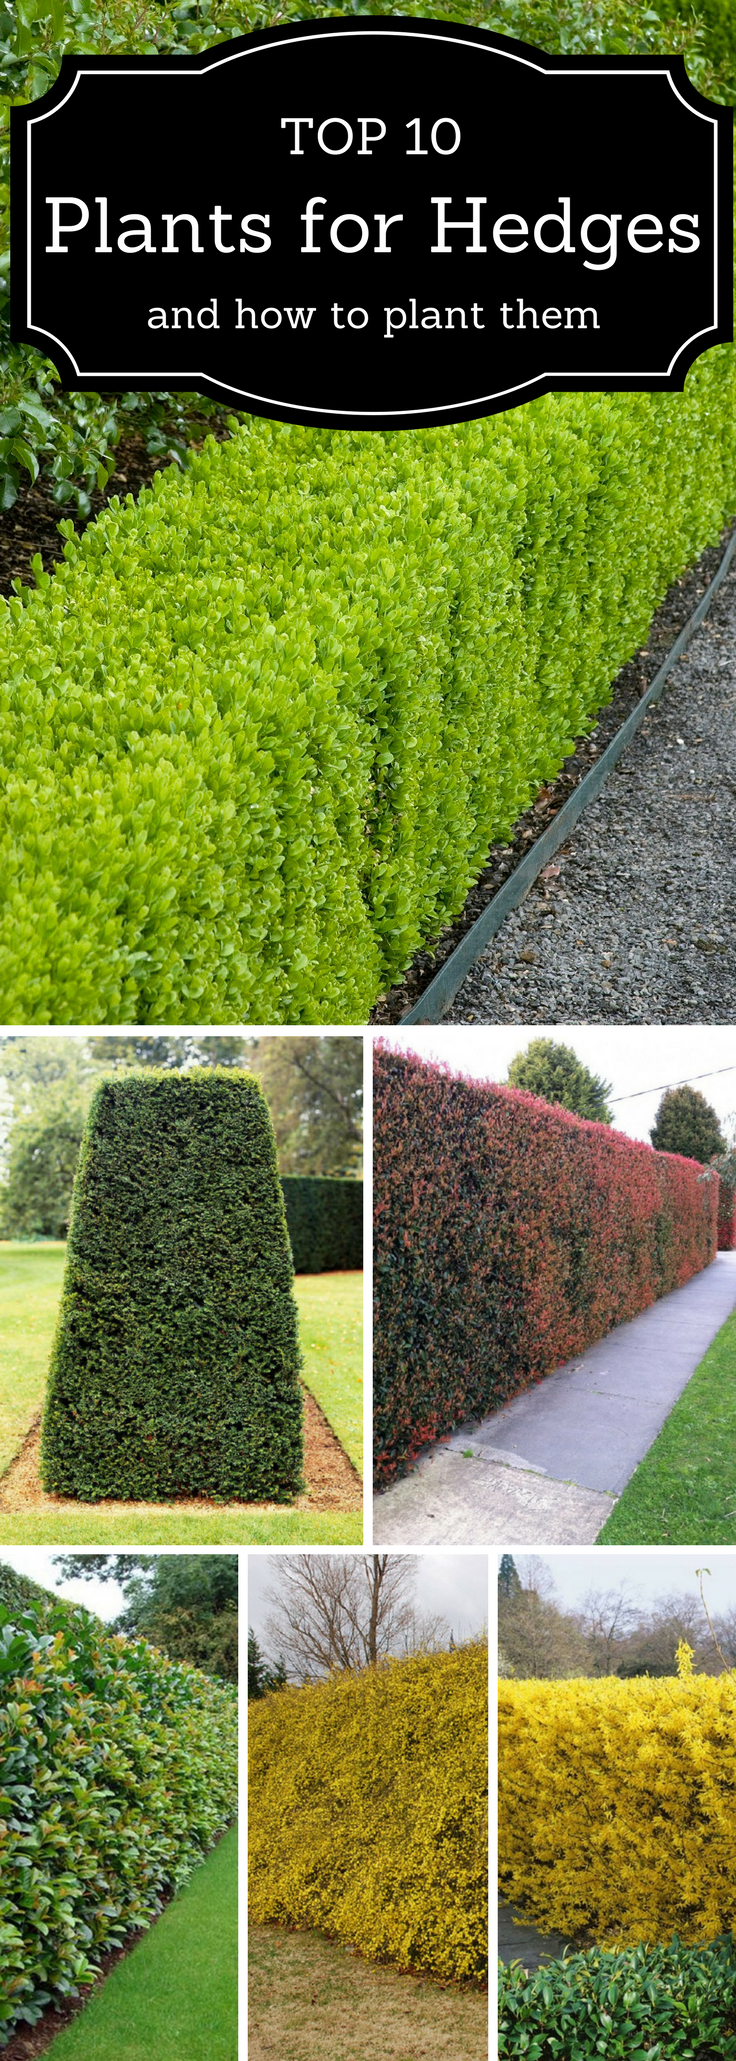 Top 10 Best Plants For Hedges And How To Plant Them Garden Hedges Hedges Landscaping Backyard Landscaping Designs